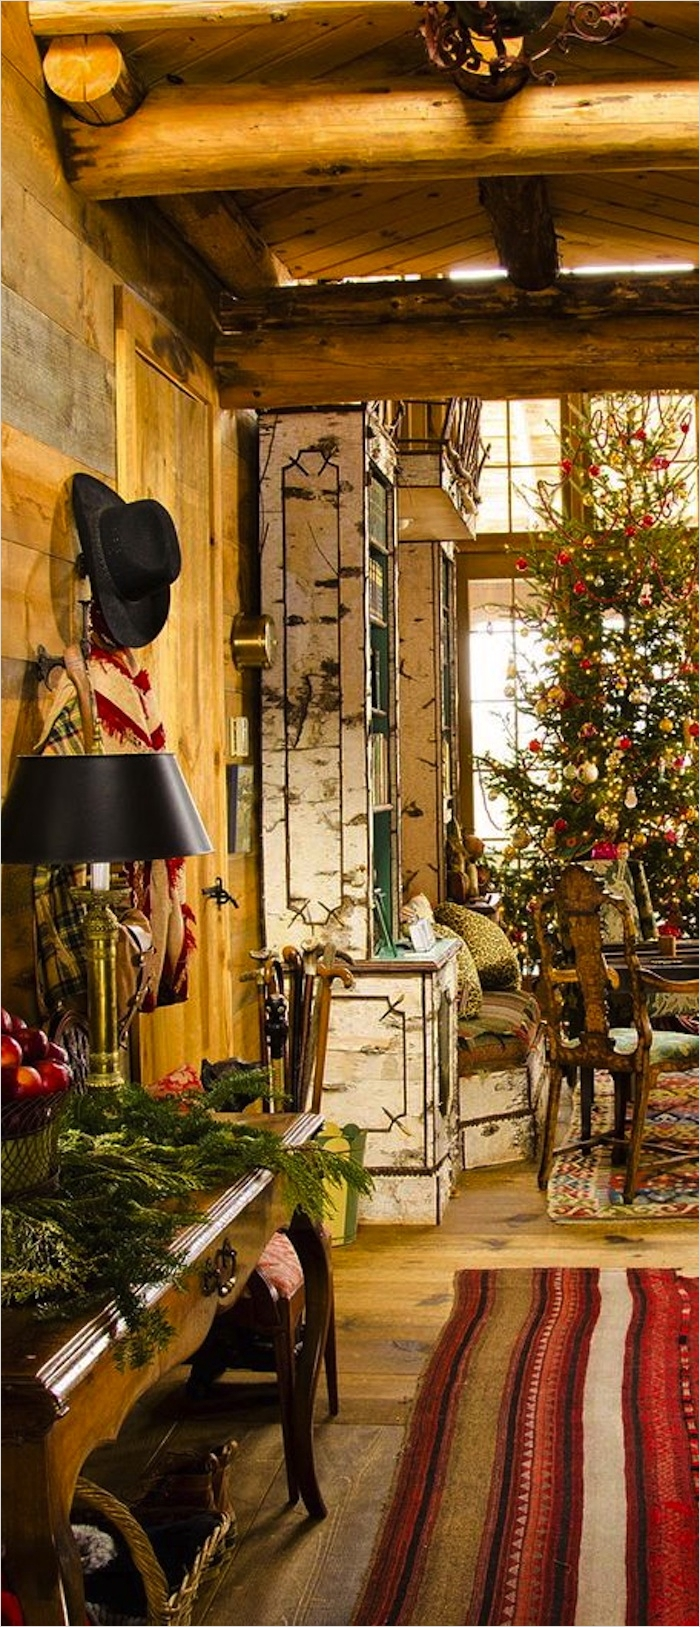 42 Stunning Country Christmas Centerpieces Ideas Ideas 72 10 Country Christmas Decorating Ideas 9